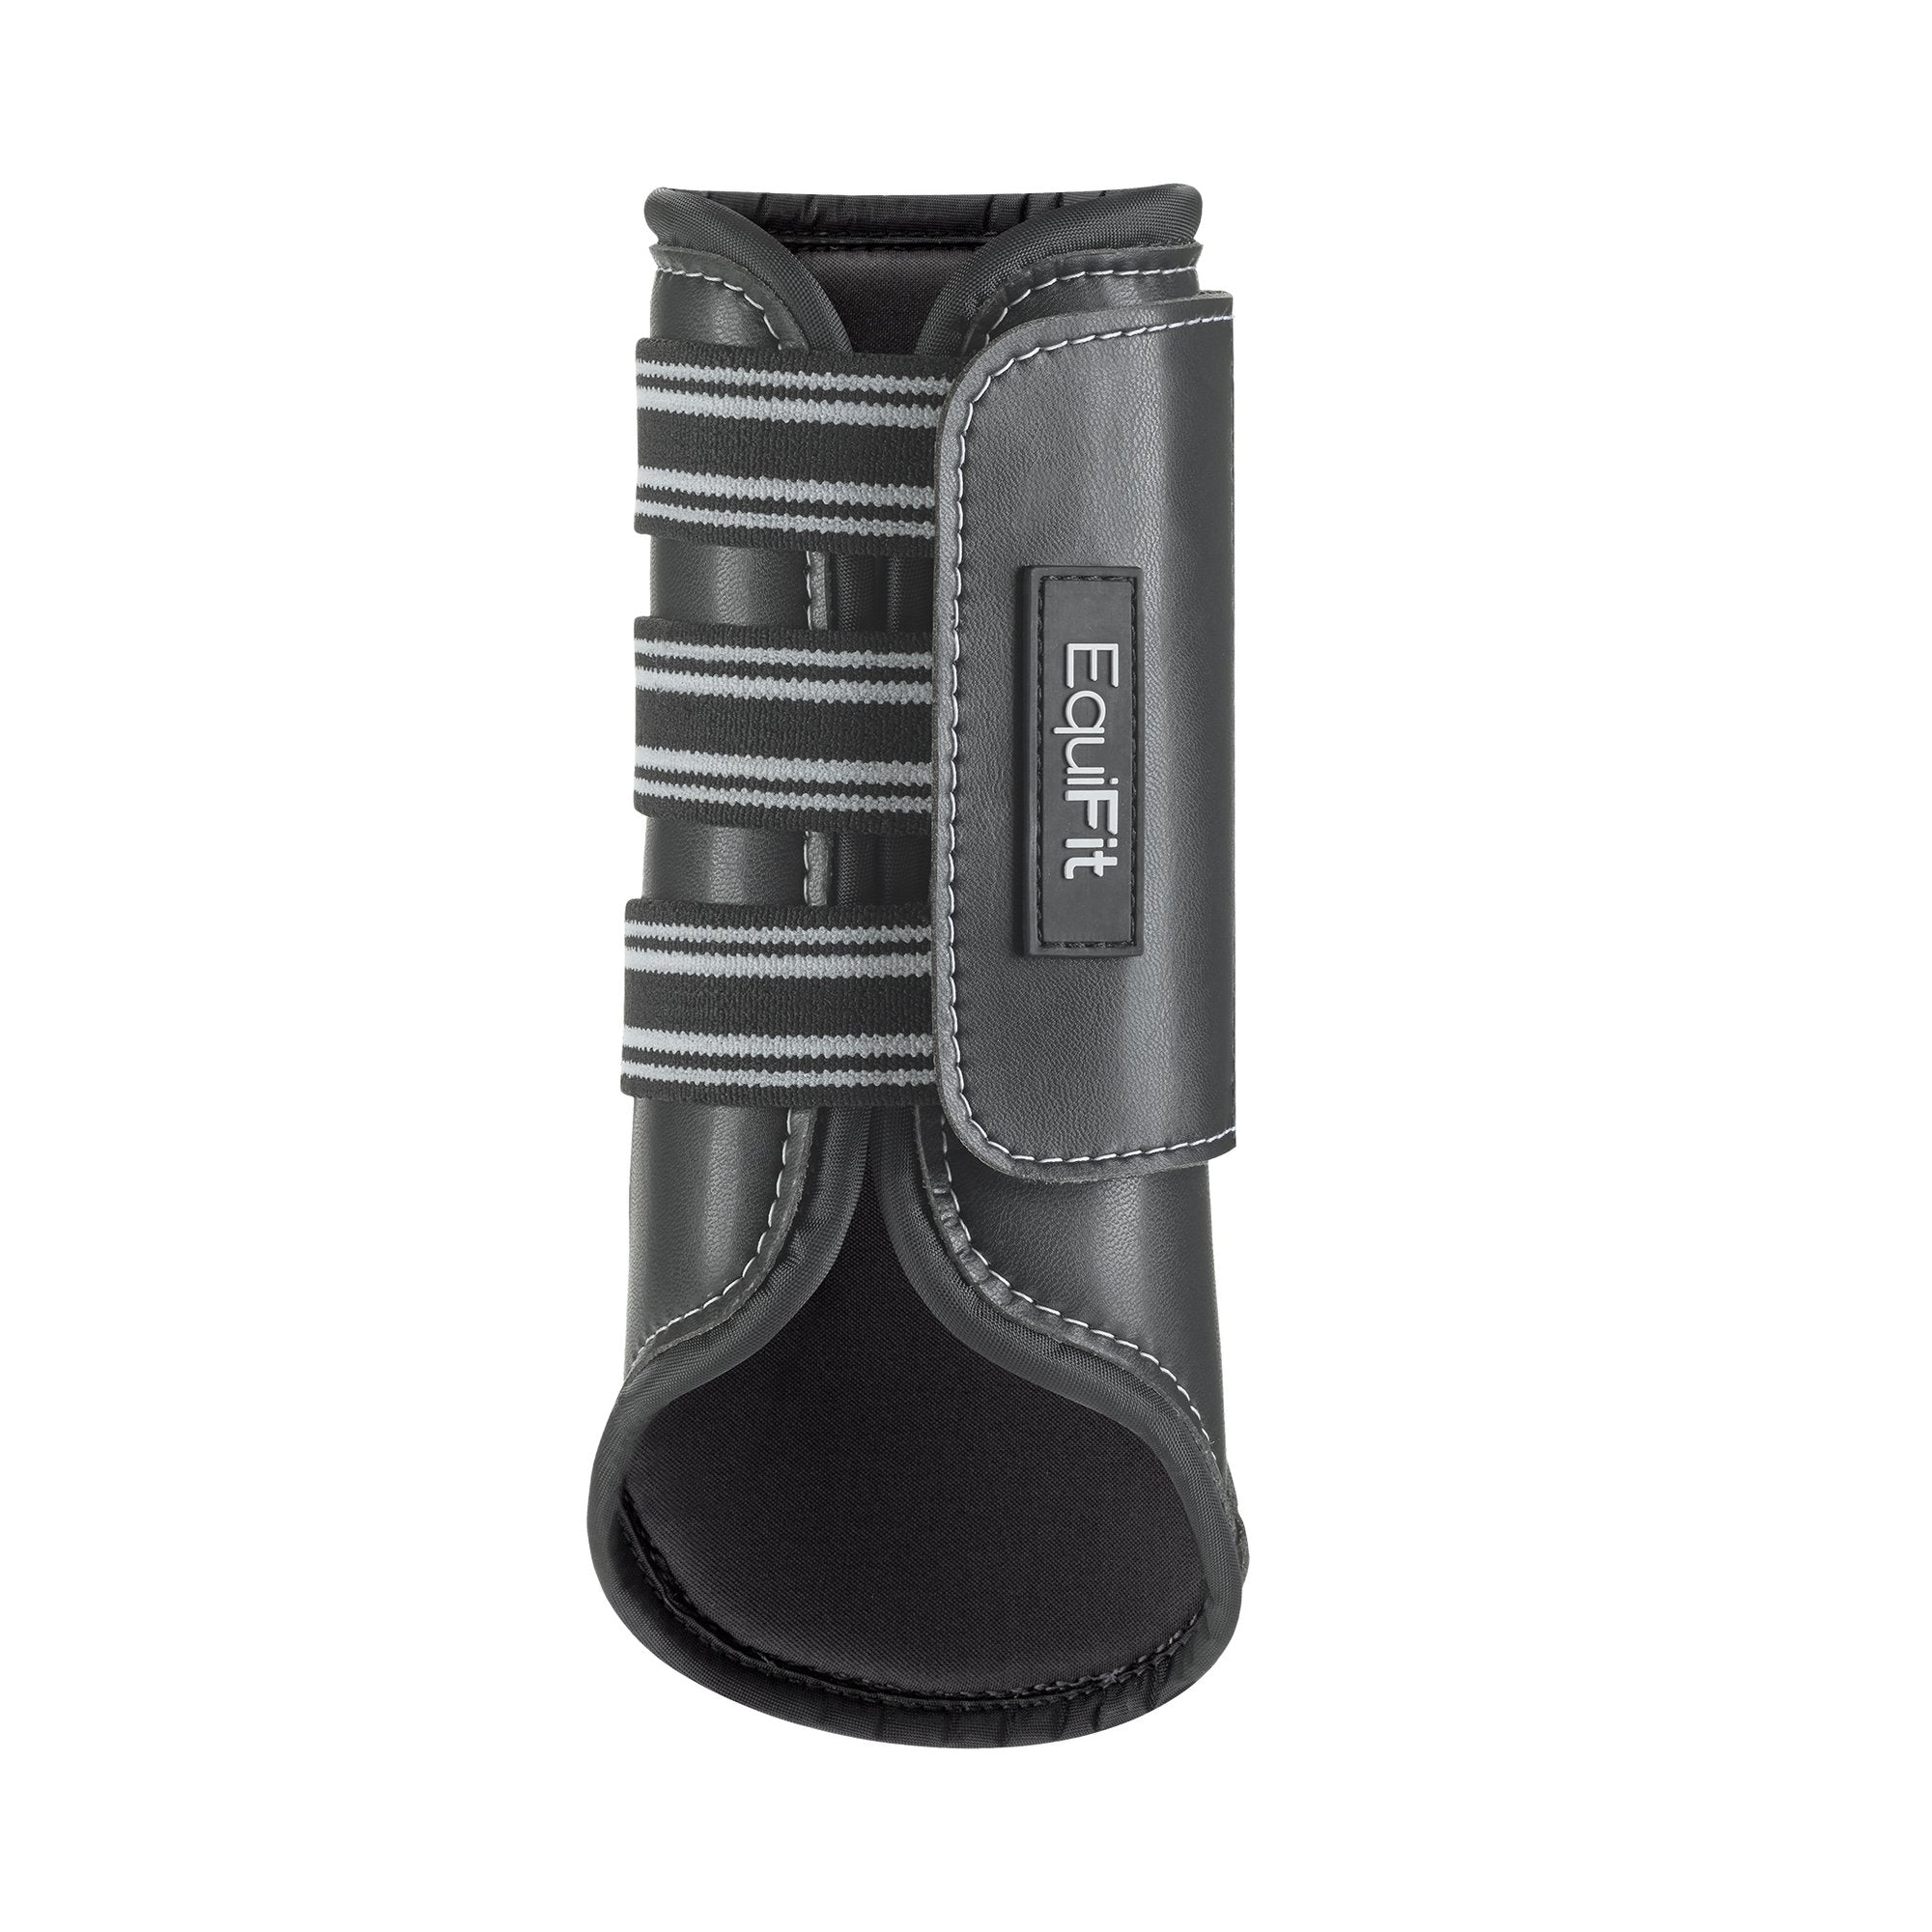 Equifit Custom MultiTeq Front Boot